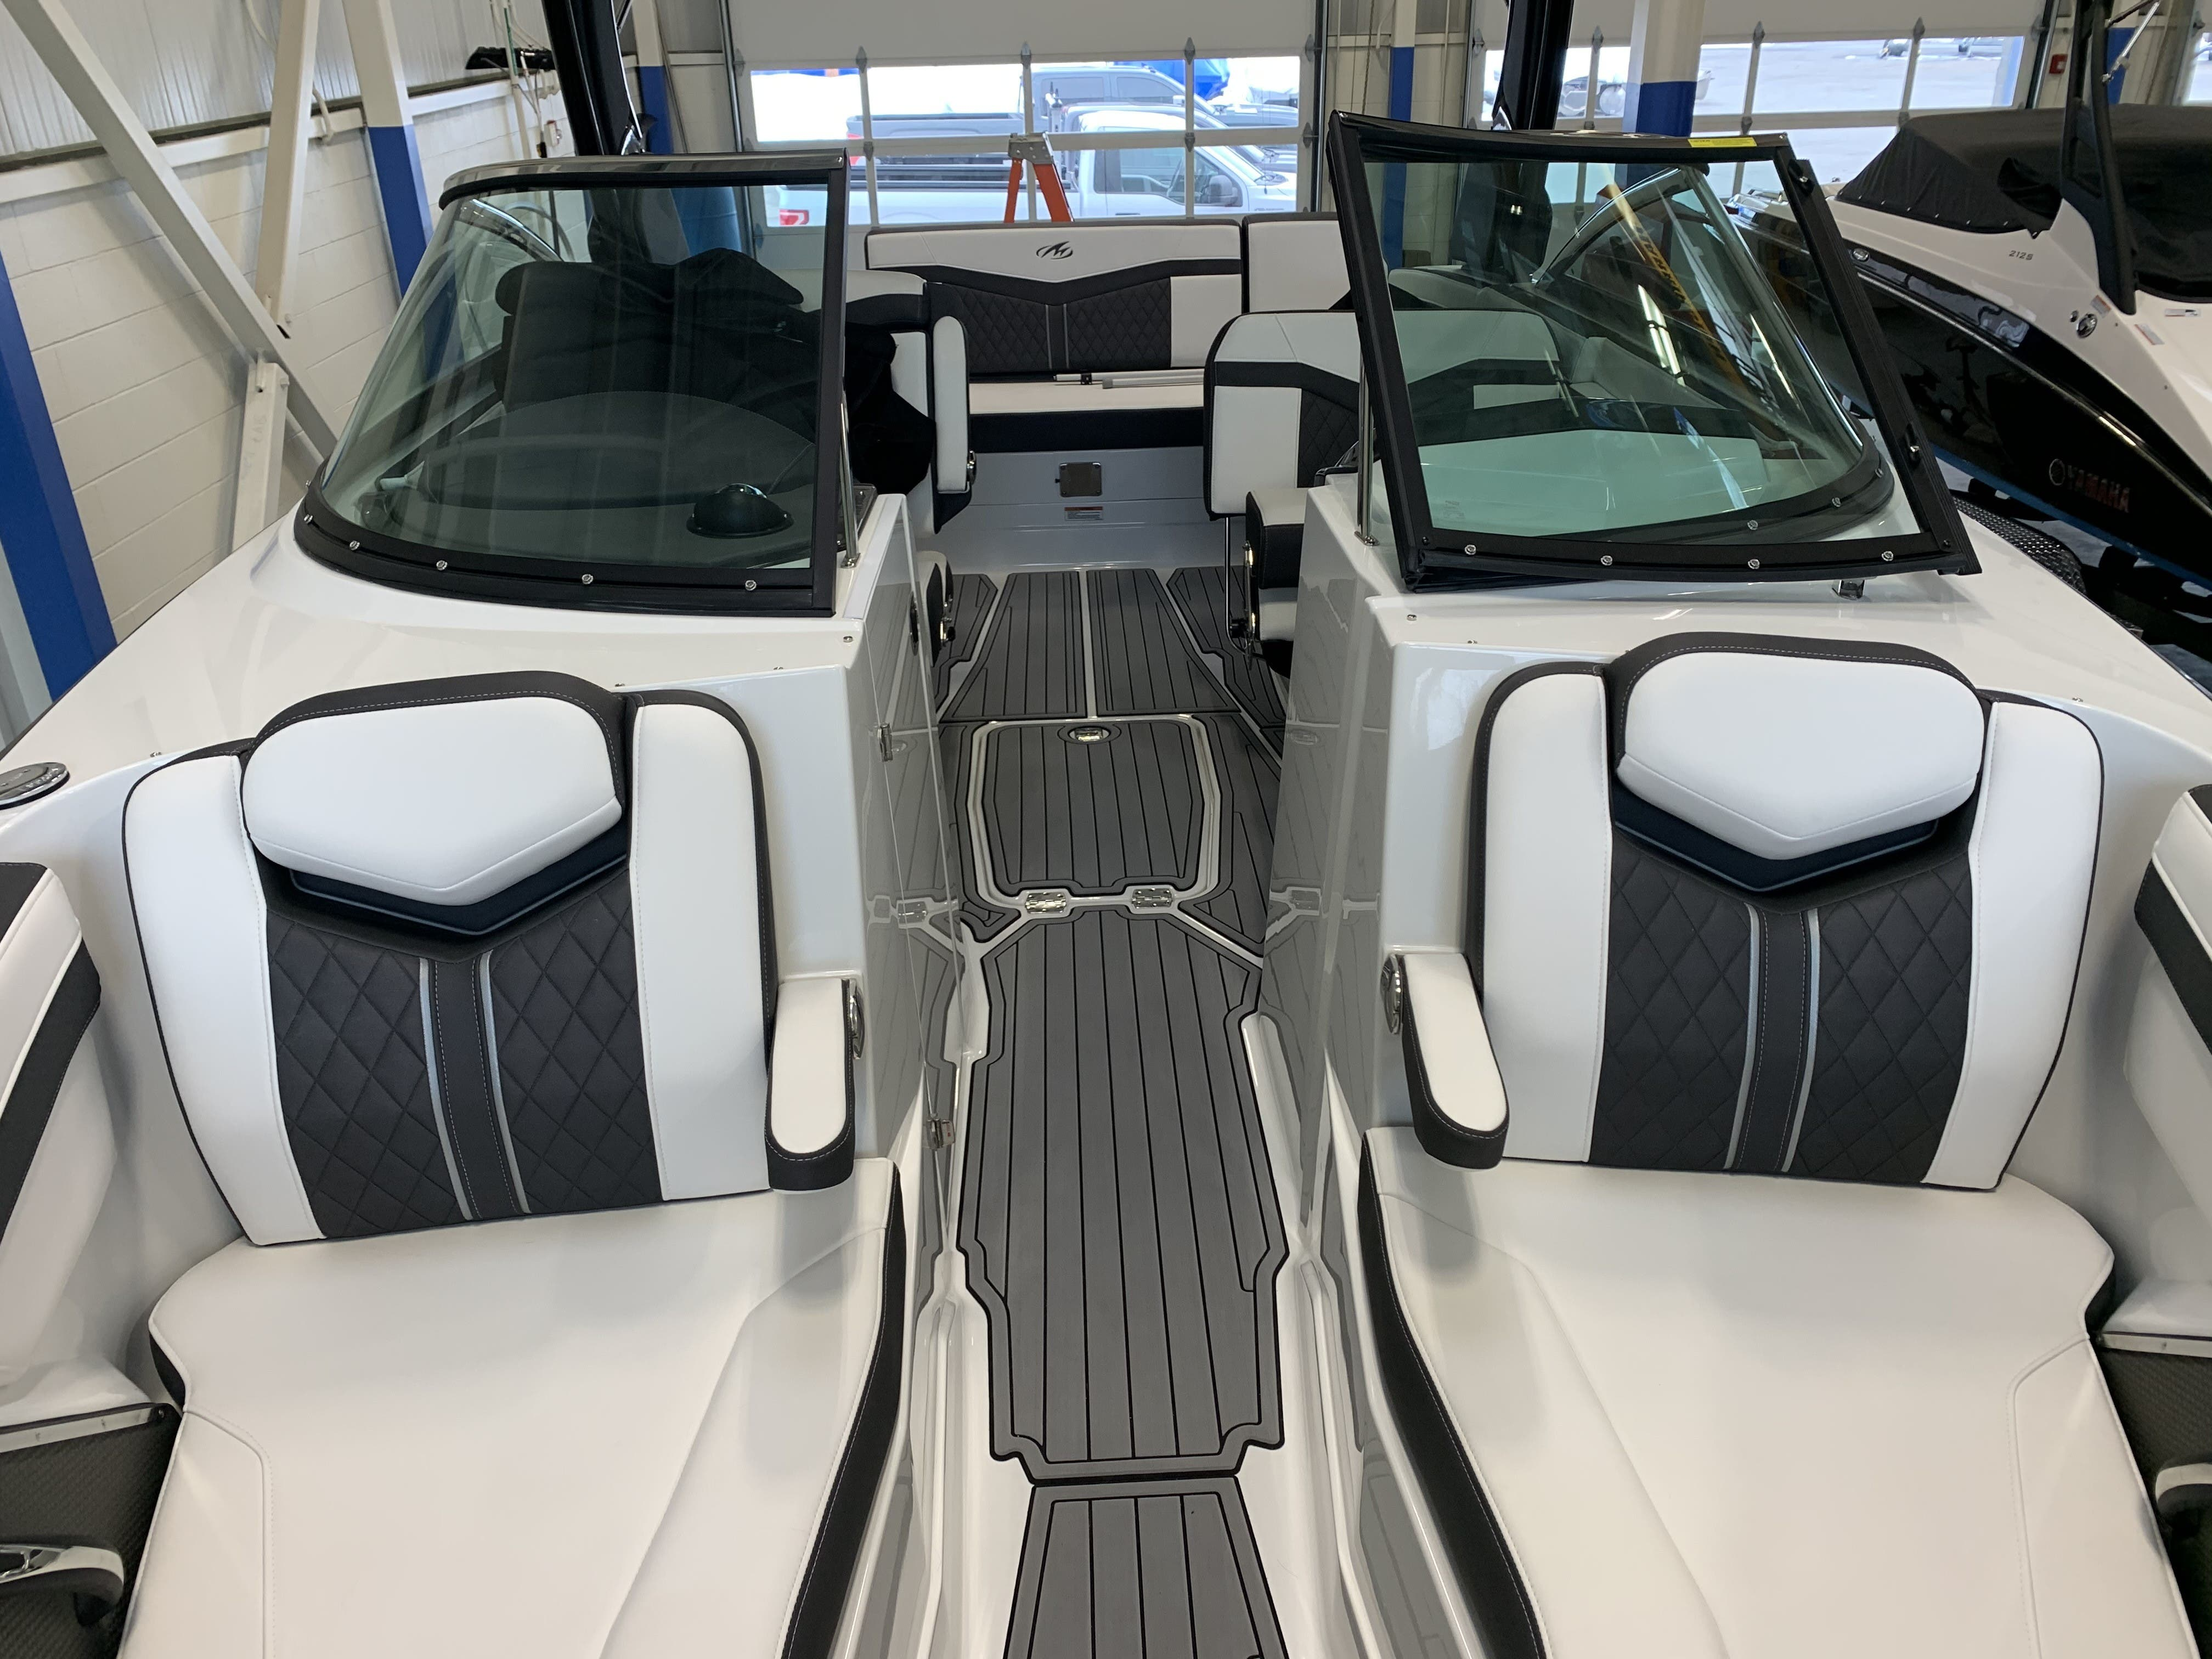 2022 Monterey boat for sale, model of the boat is 278ss & Image # 4 of 18